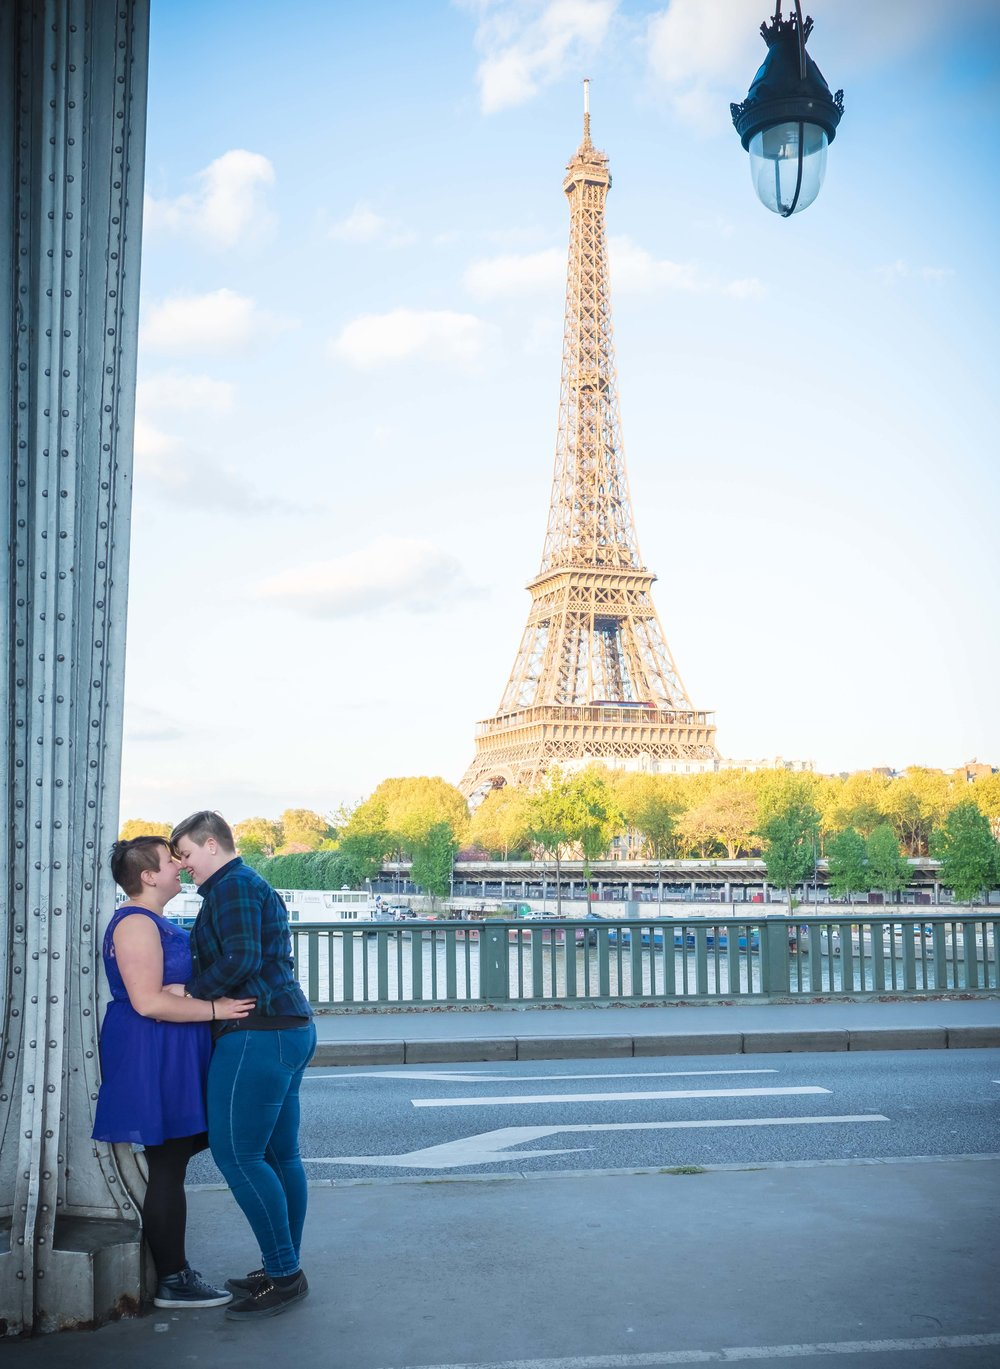 Same sex couple in love after engagement in Paris with view of the Eiffel Tower